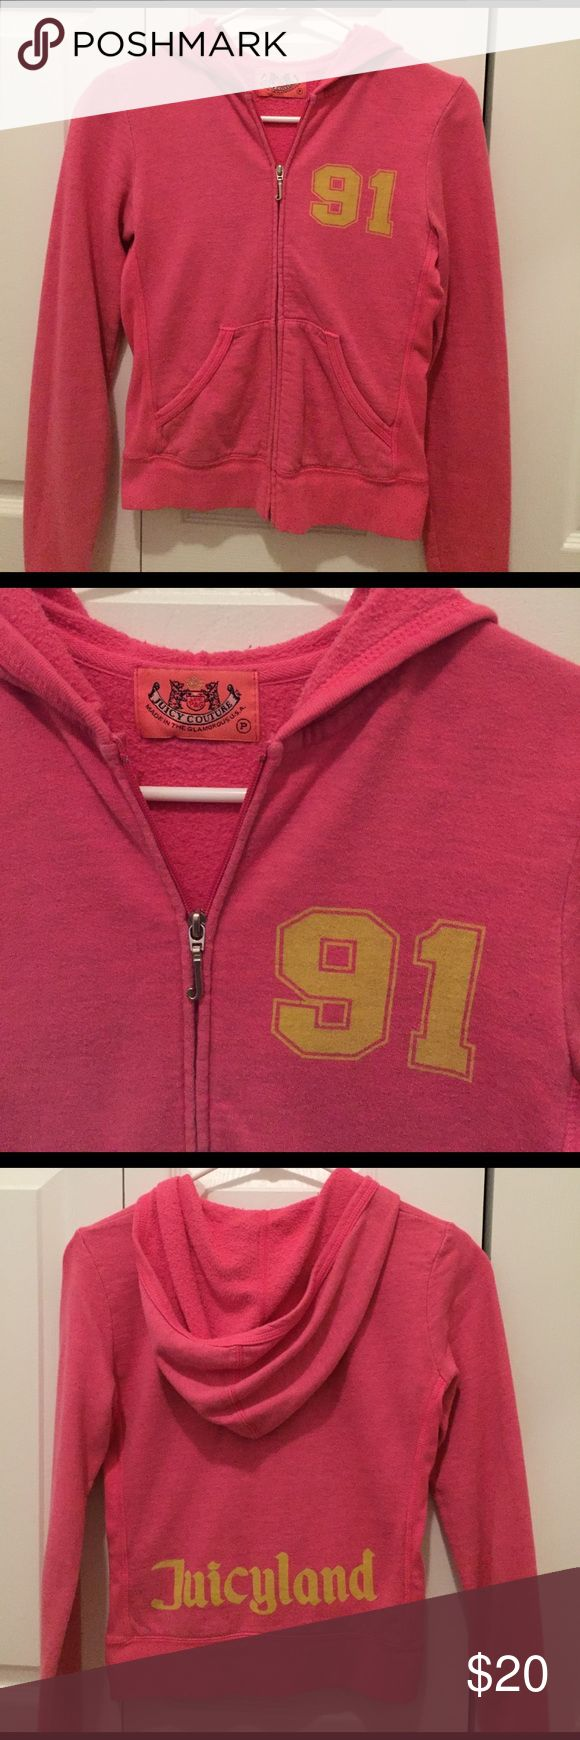 💕 Juicy Couture zip-up hoodie Adorable pink zipper Juicy Couture sweater 💕 size: petite Juicy Couture Sweaters